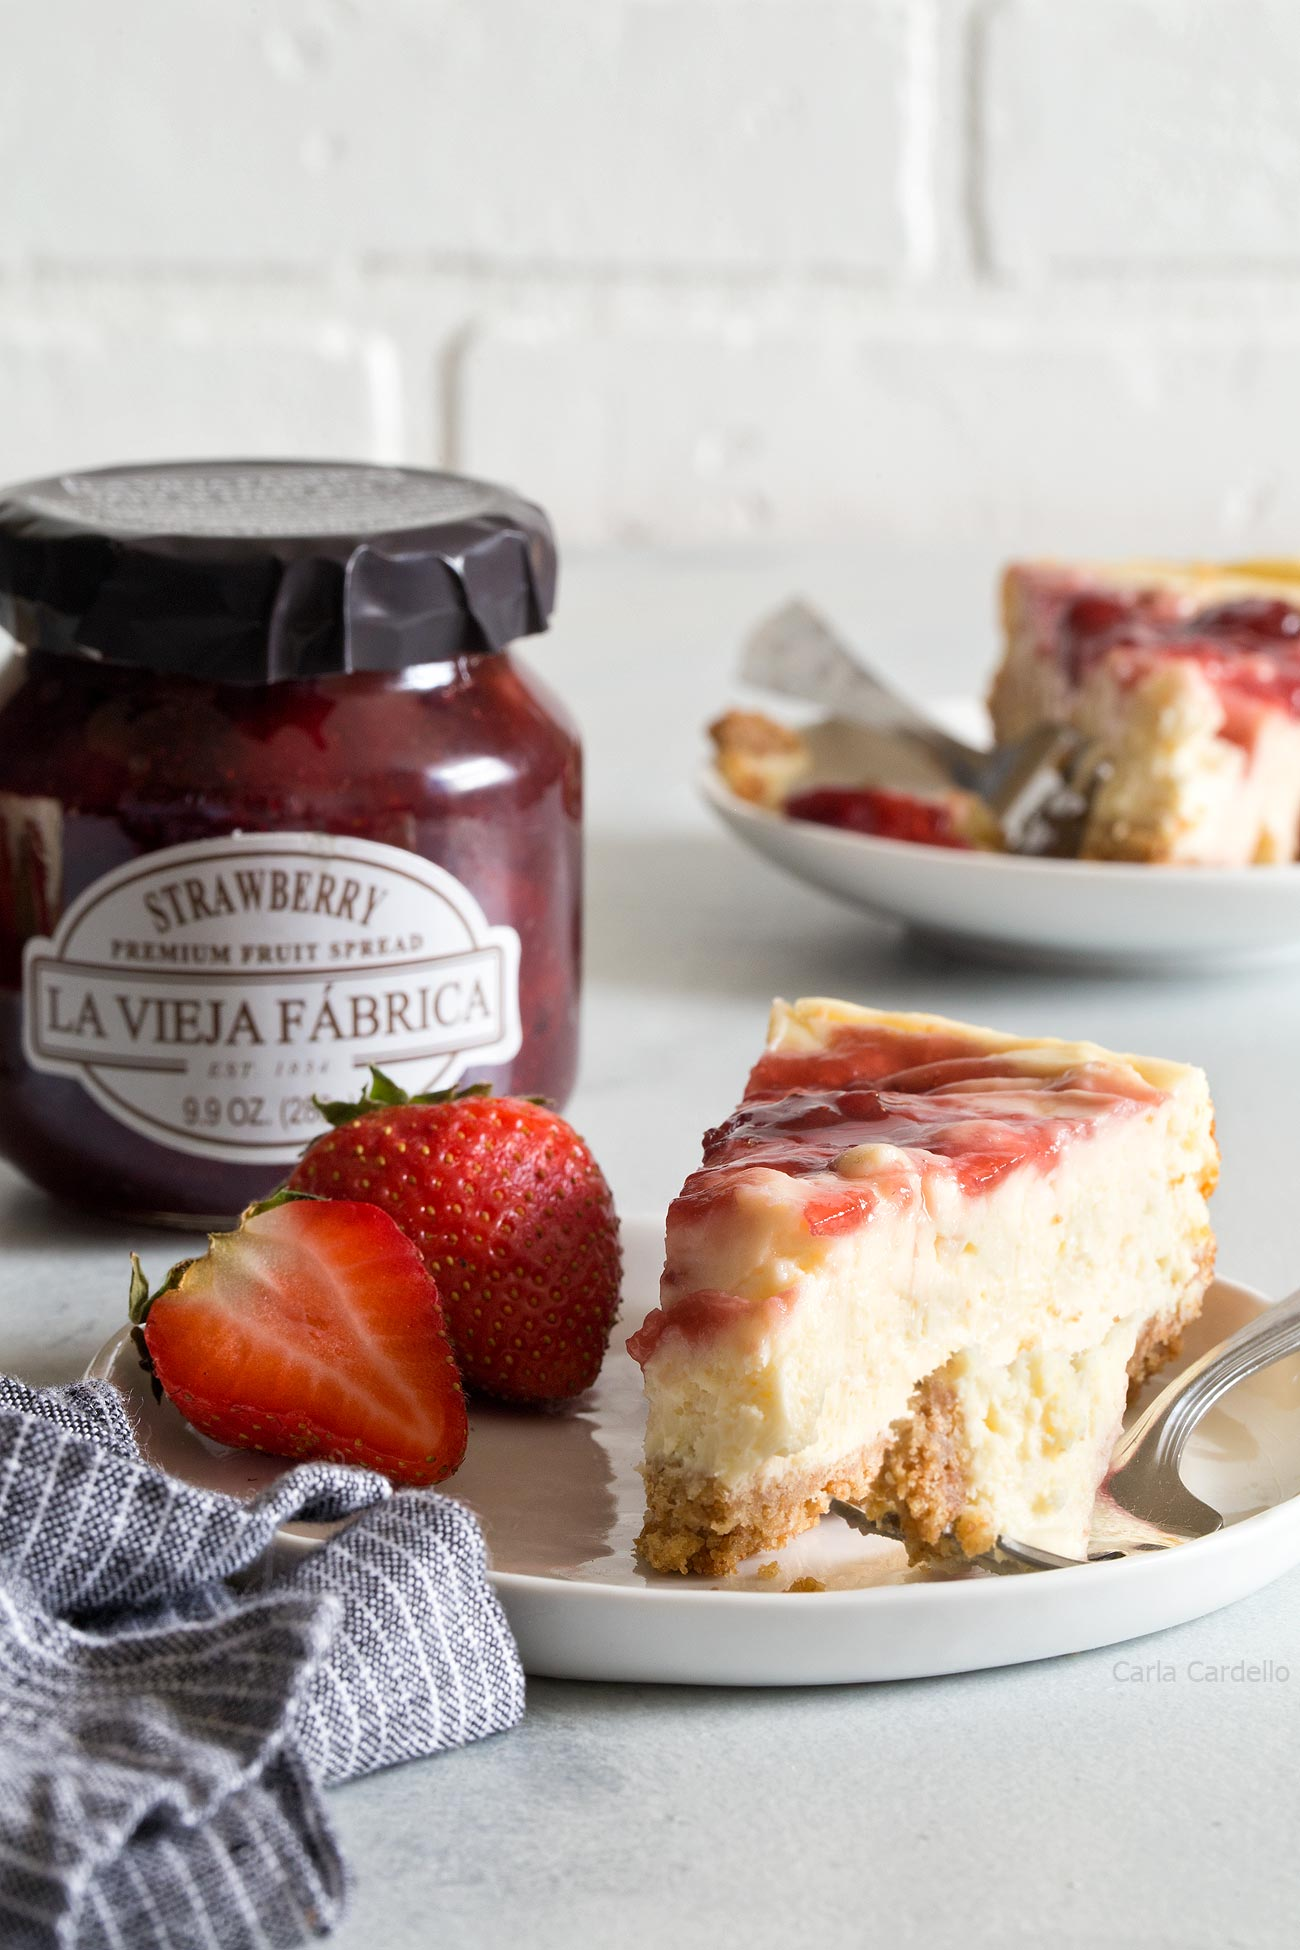 Small Batch Strawberry Swirl Cheesecake Bars made with La Vieja Fabrica strawberry fruit spread